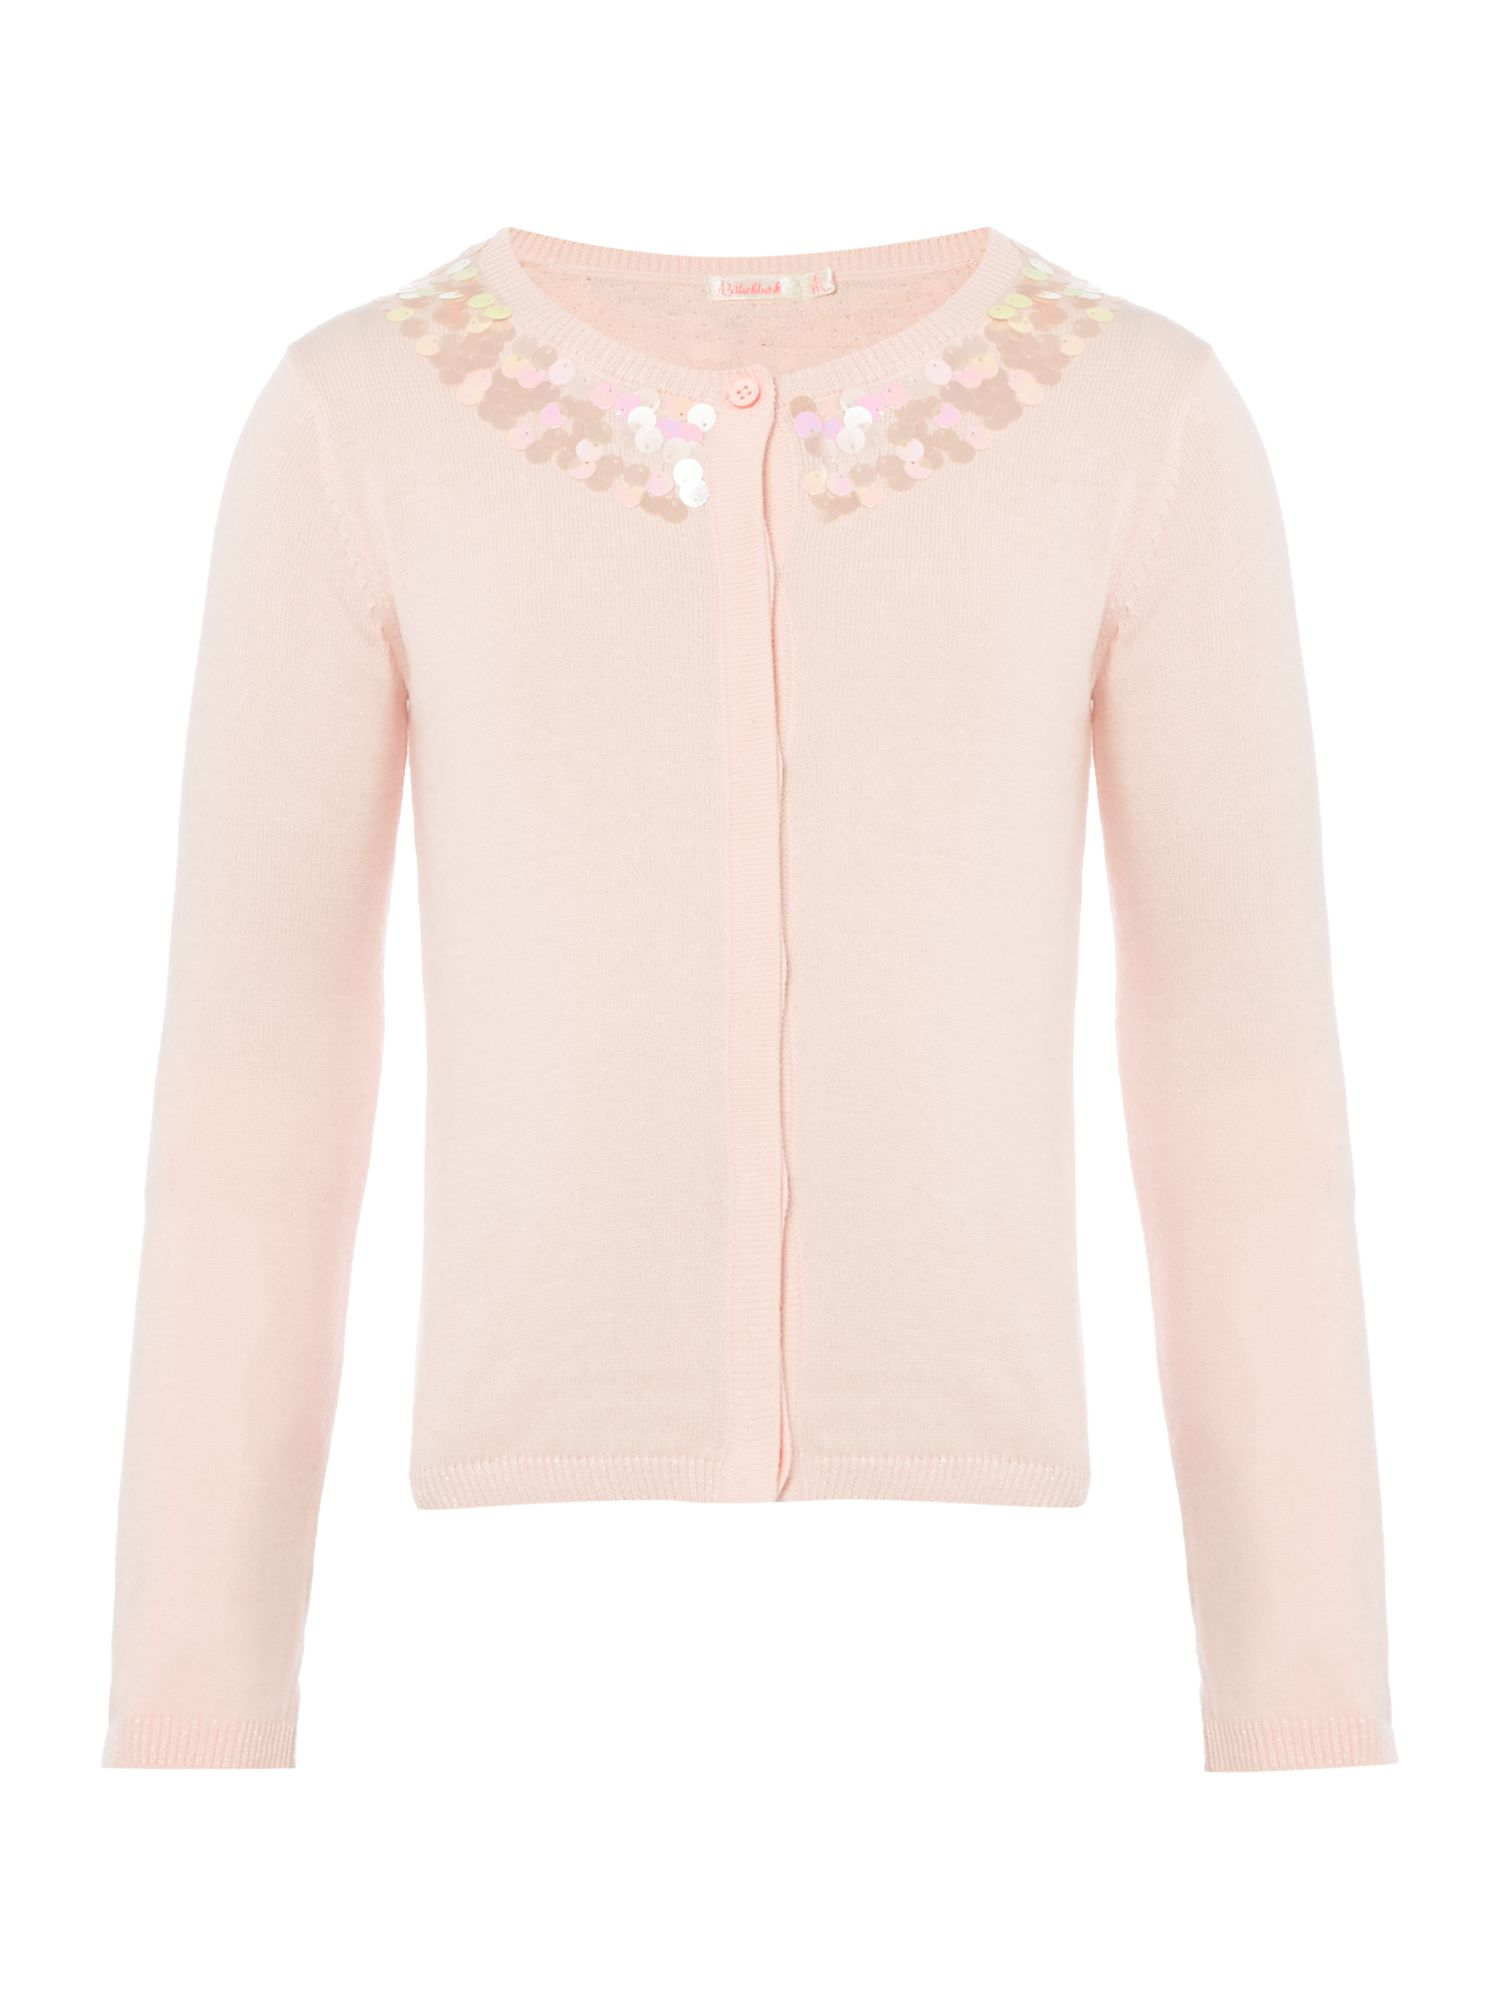 Billieblush Billieblush Girls Sequin-Detail Knitted Cardigan, Pink